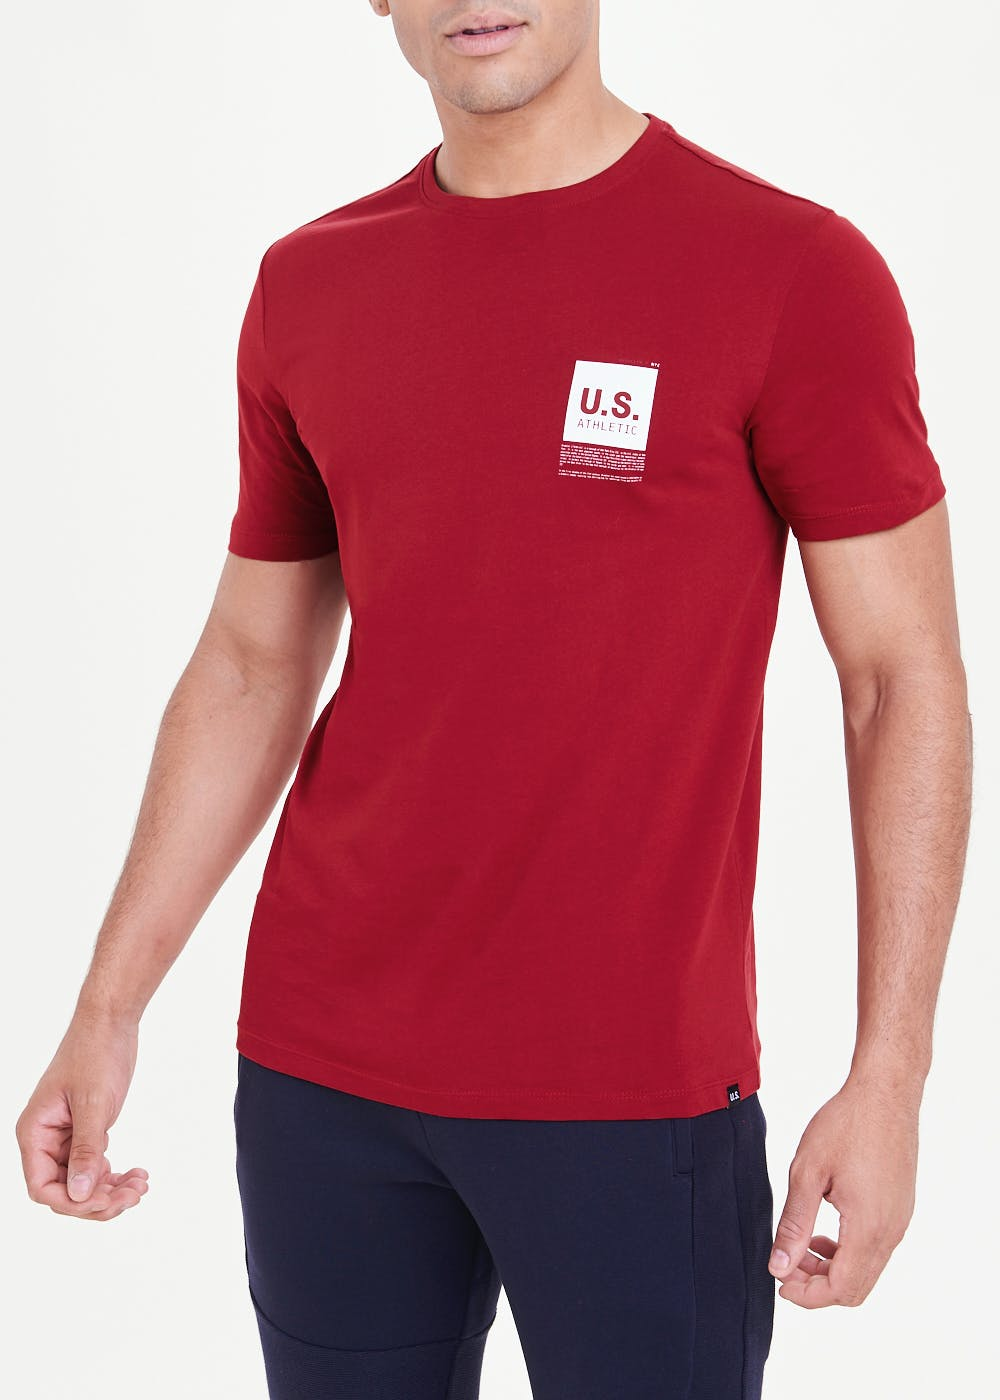 US Athletic New York Map T-Shirt – Red